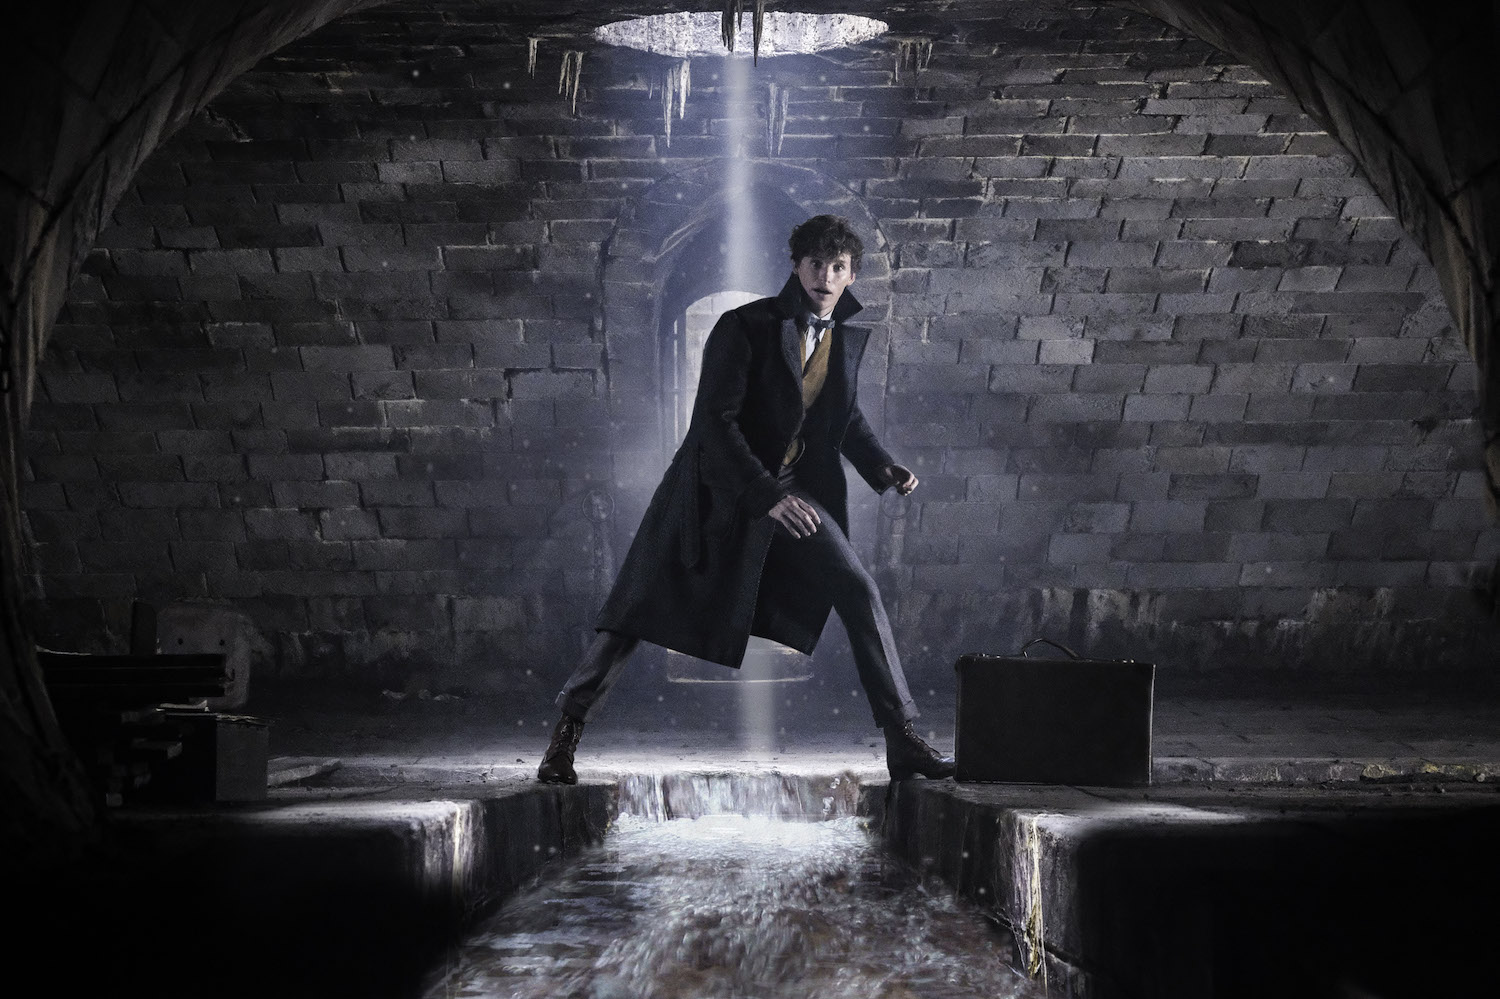 The new <em>Fantastic Beasts 2</em> trailer is here, and it's downright magical